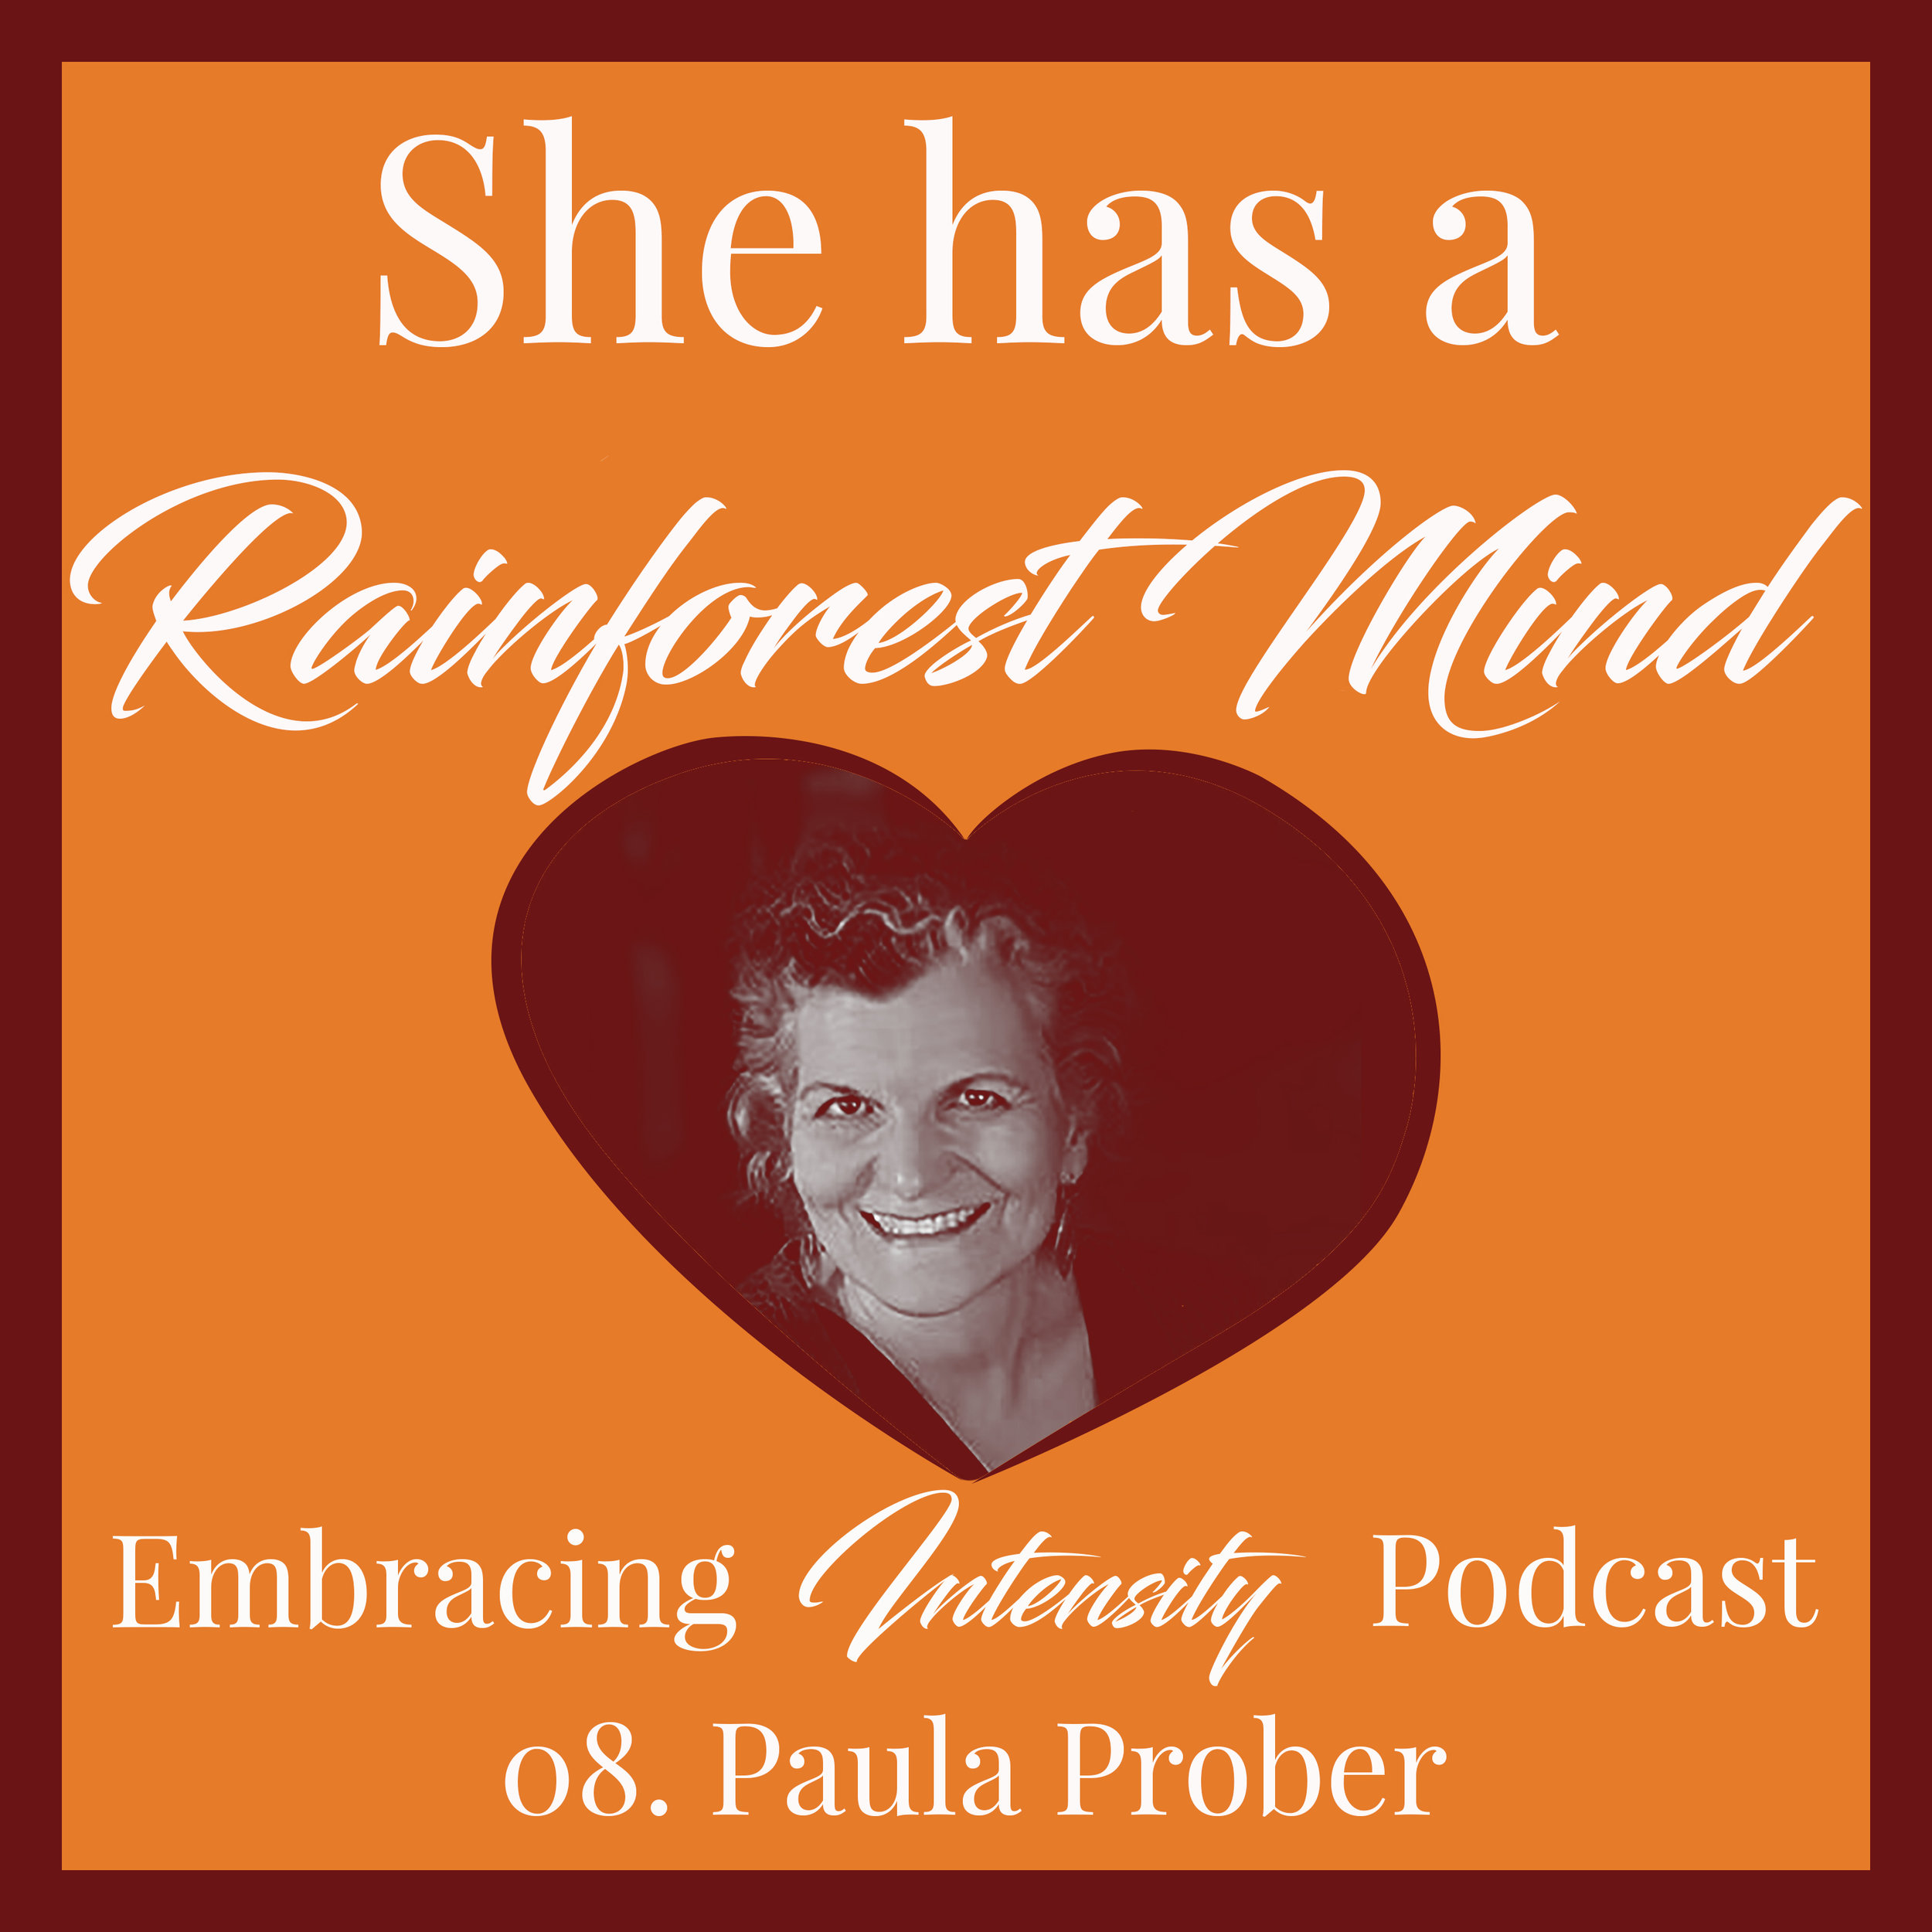 Healing for the Gifted Adult with Paula Prober on Embracing Intensity Podcast ep. 08